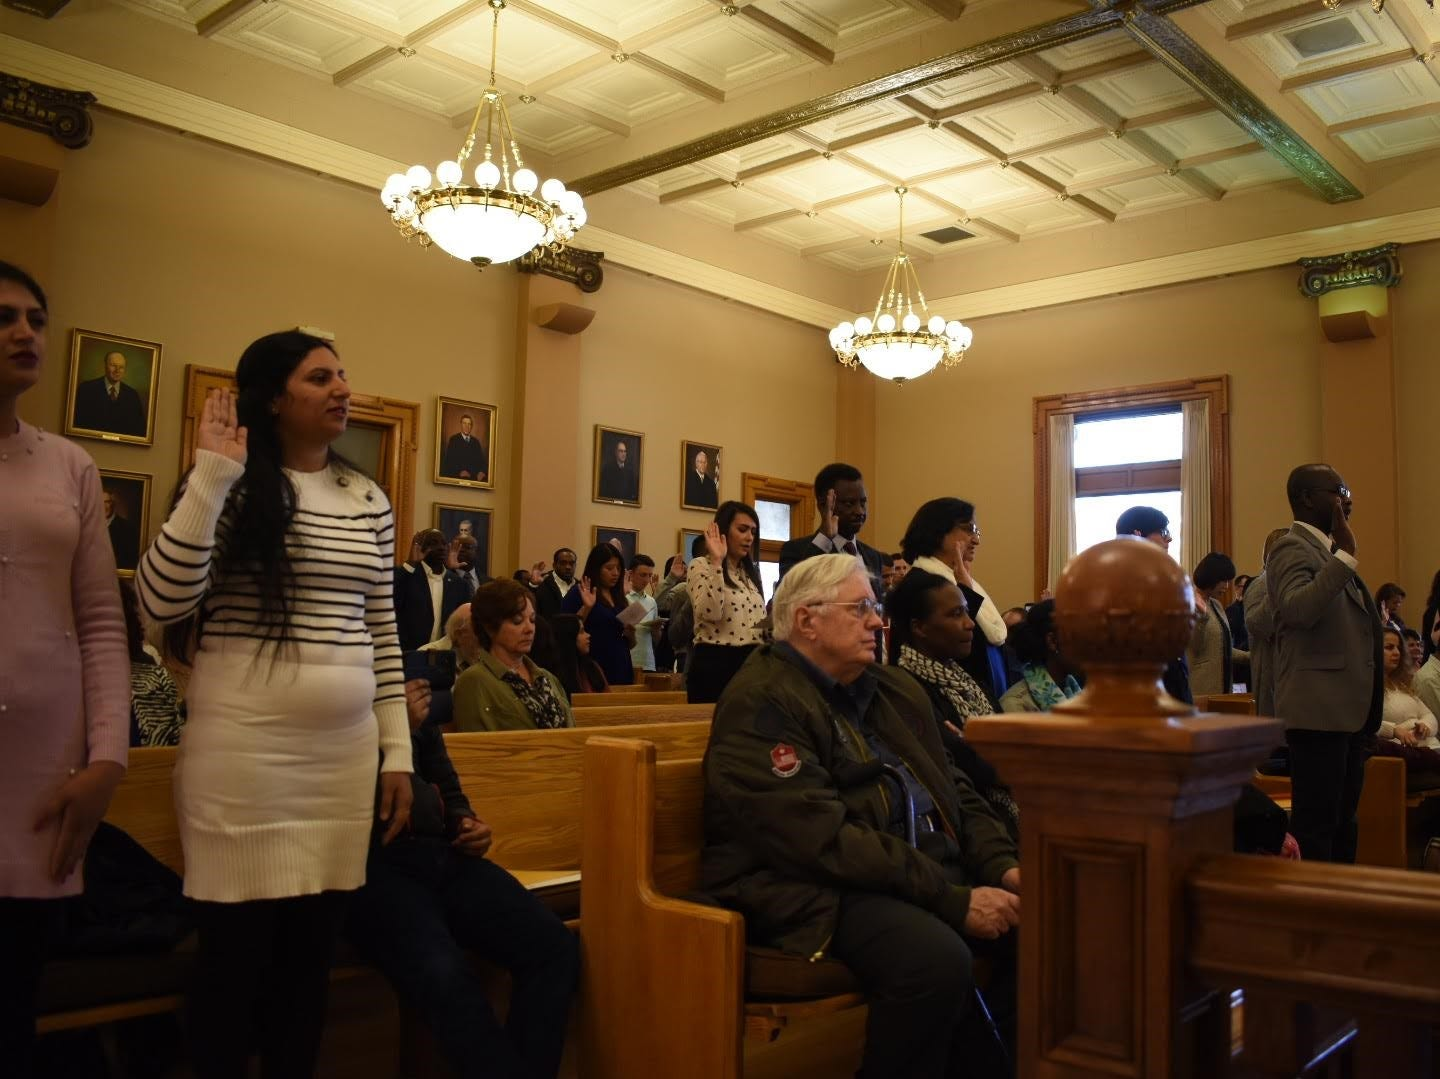 The American Civic Association works with the Broome County Clerk to organize Naturalization Ceremonies. The most recent ceremony was held on March 27.